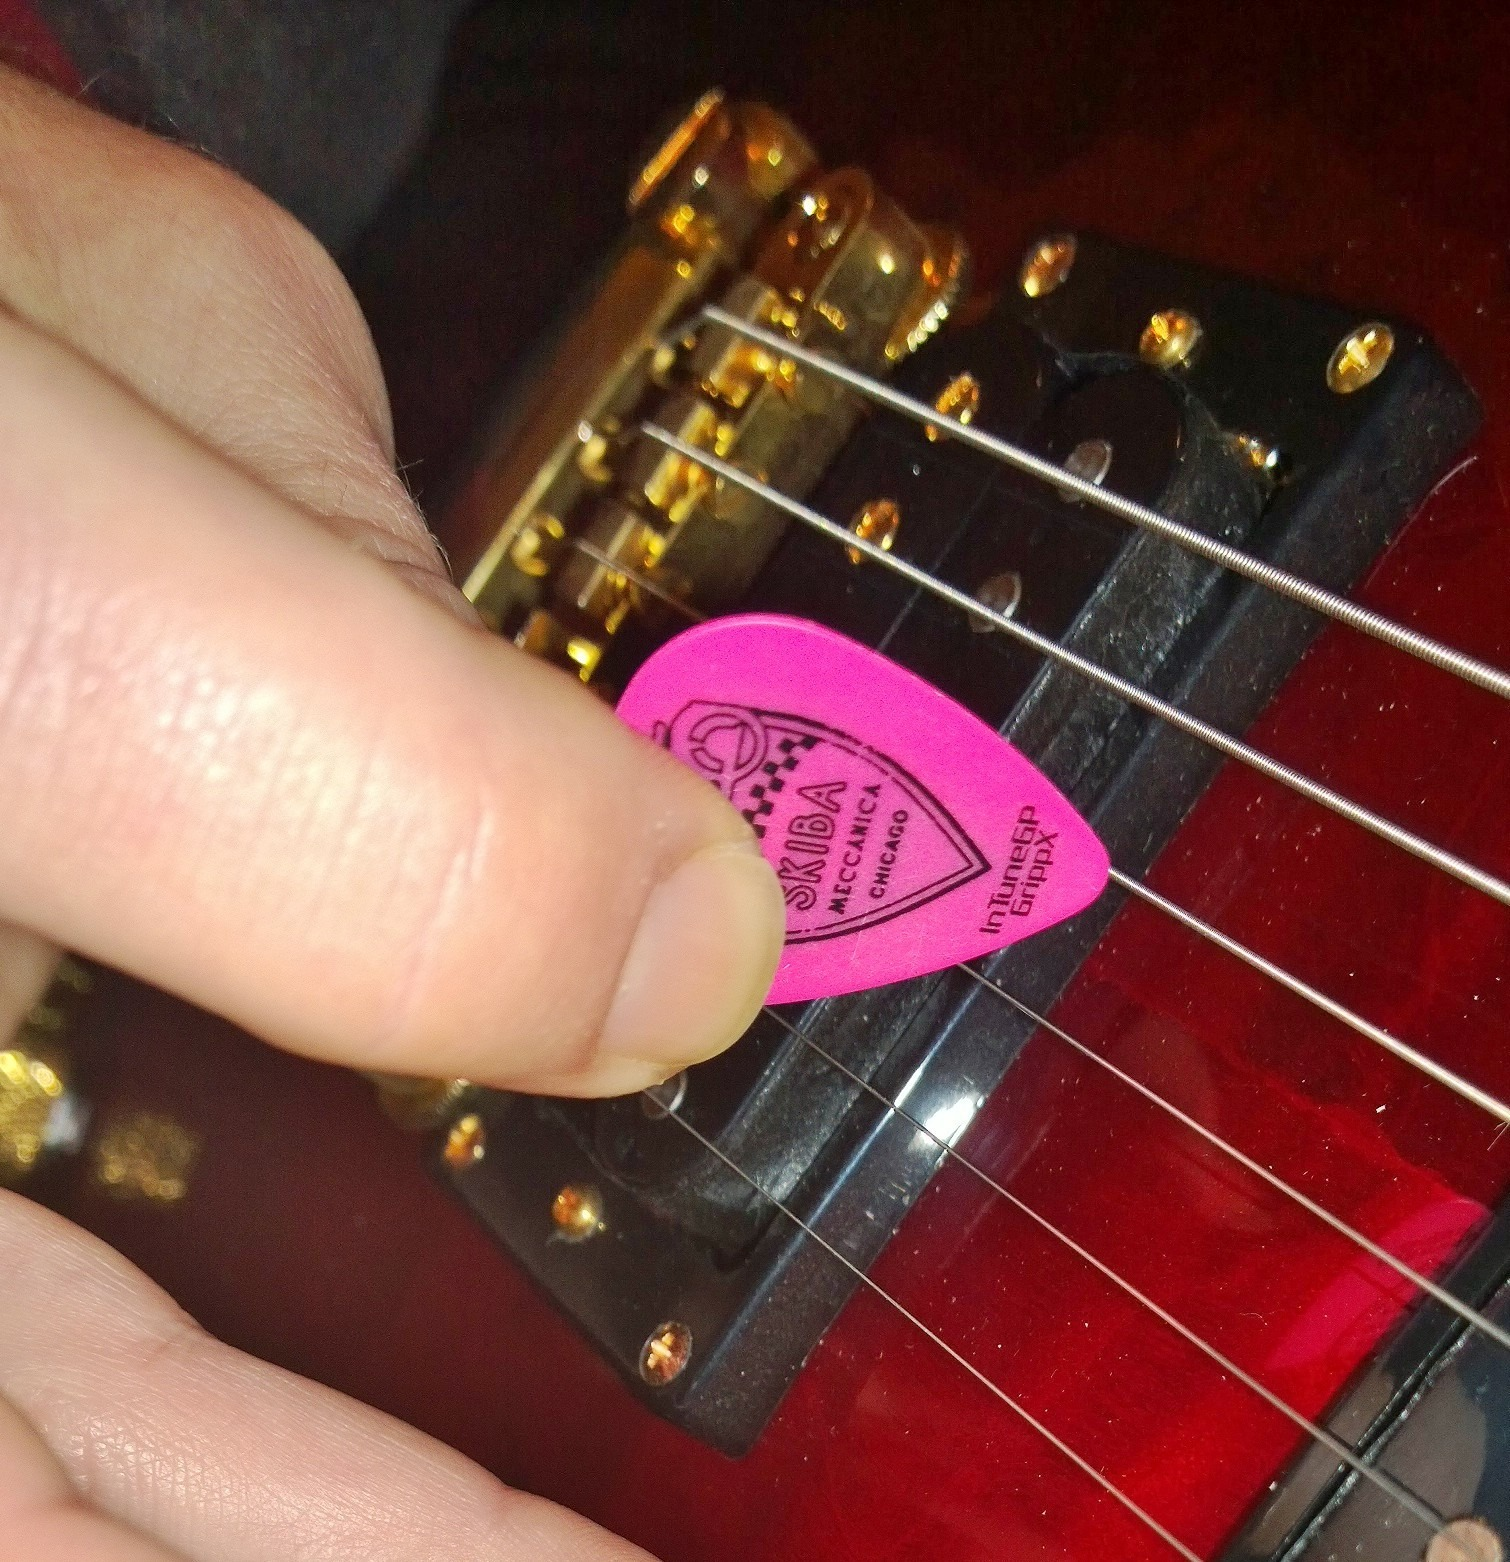 Fan photos of personalized guitar picks